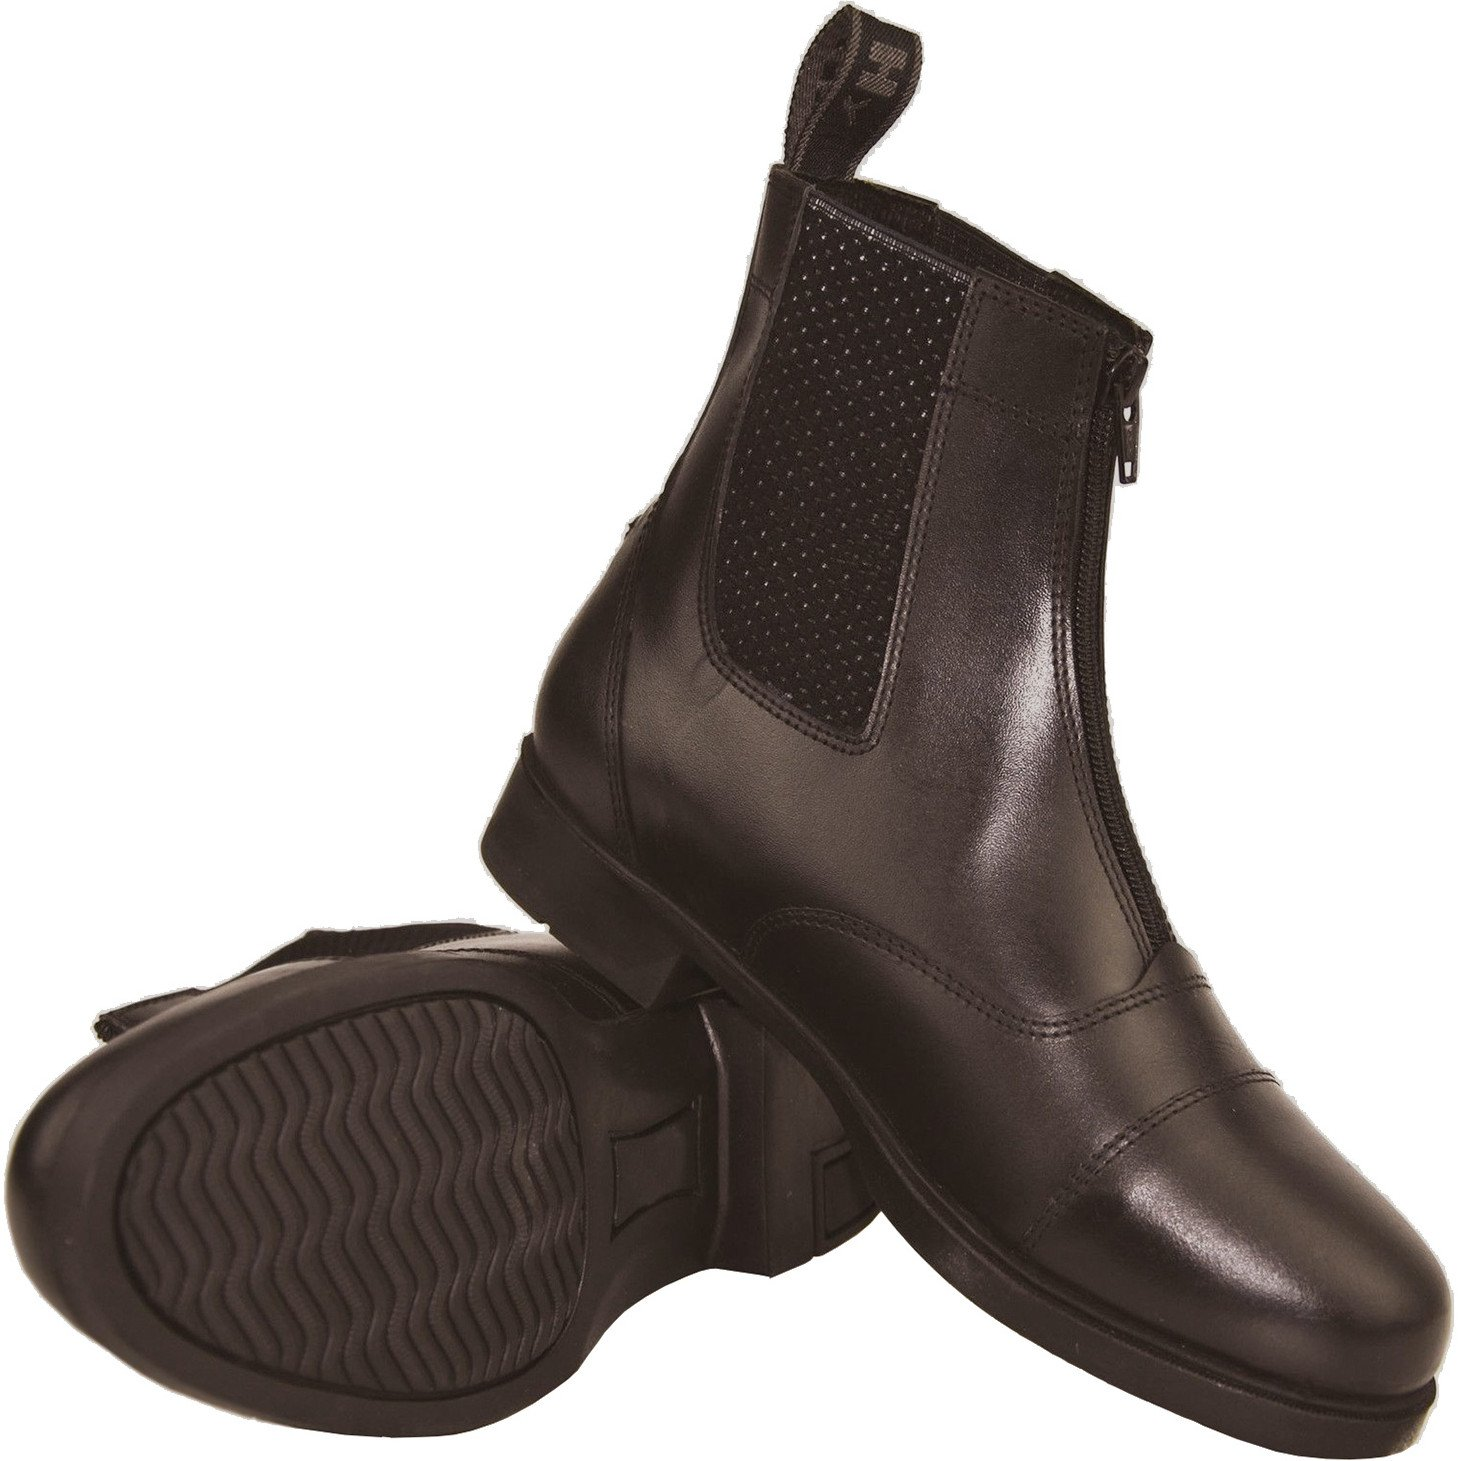 Y-H Hy Canterbury Zip Up Jodhpur Short Leather Boots Junior Sizes